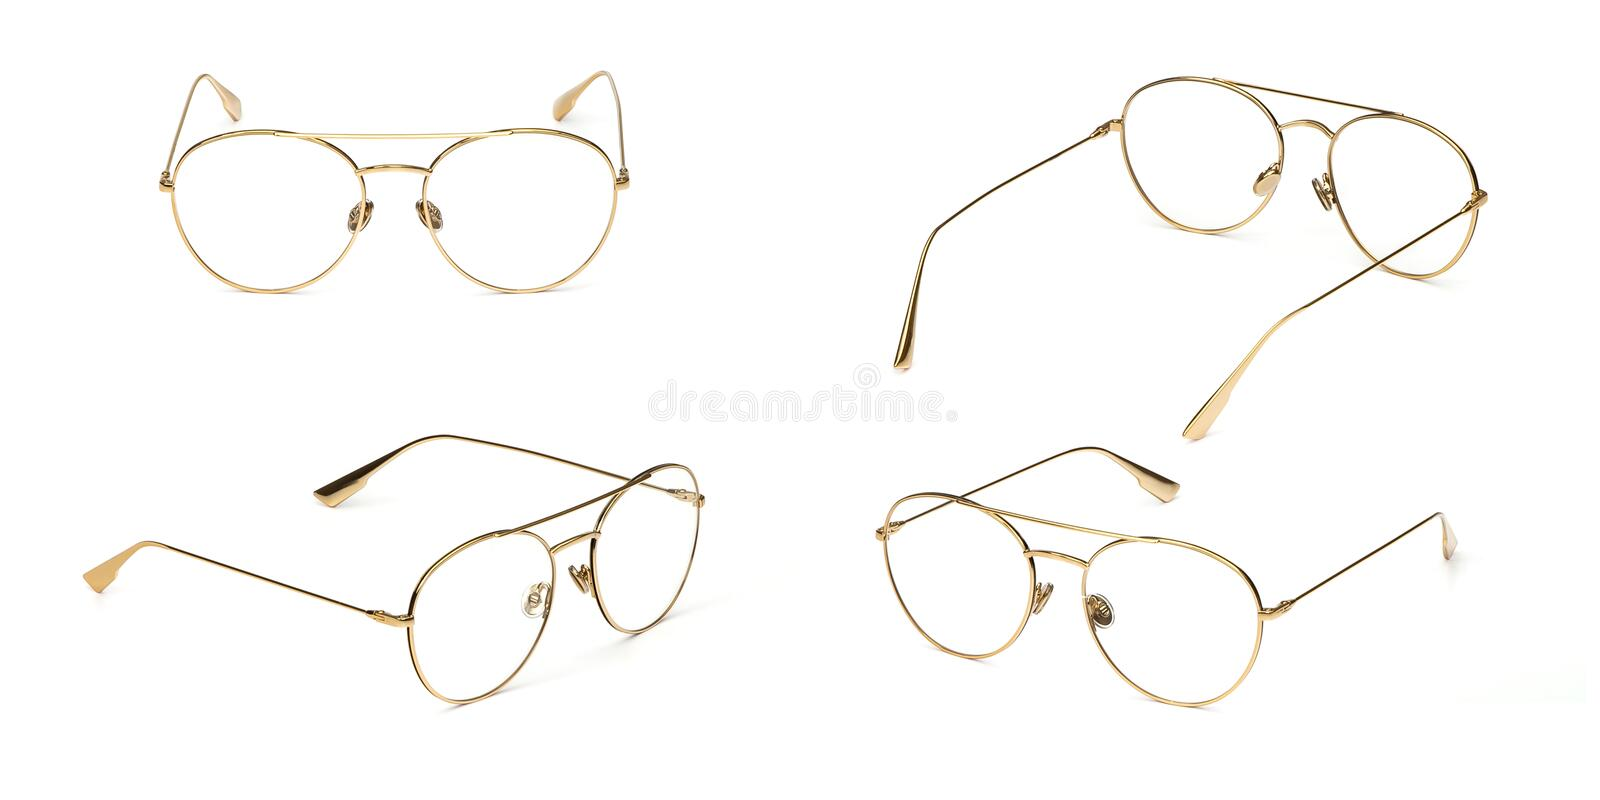 Set glasses gold metal material business style transparent isolated on white background. Collection fashion office eye glasses stock photos